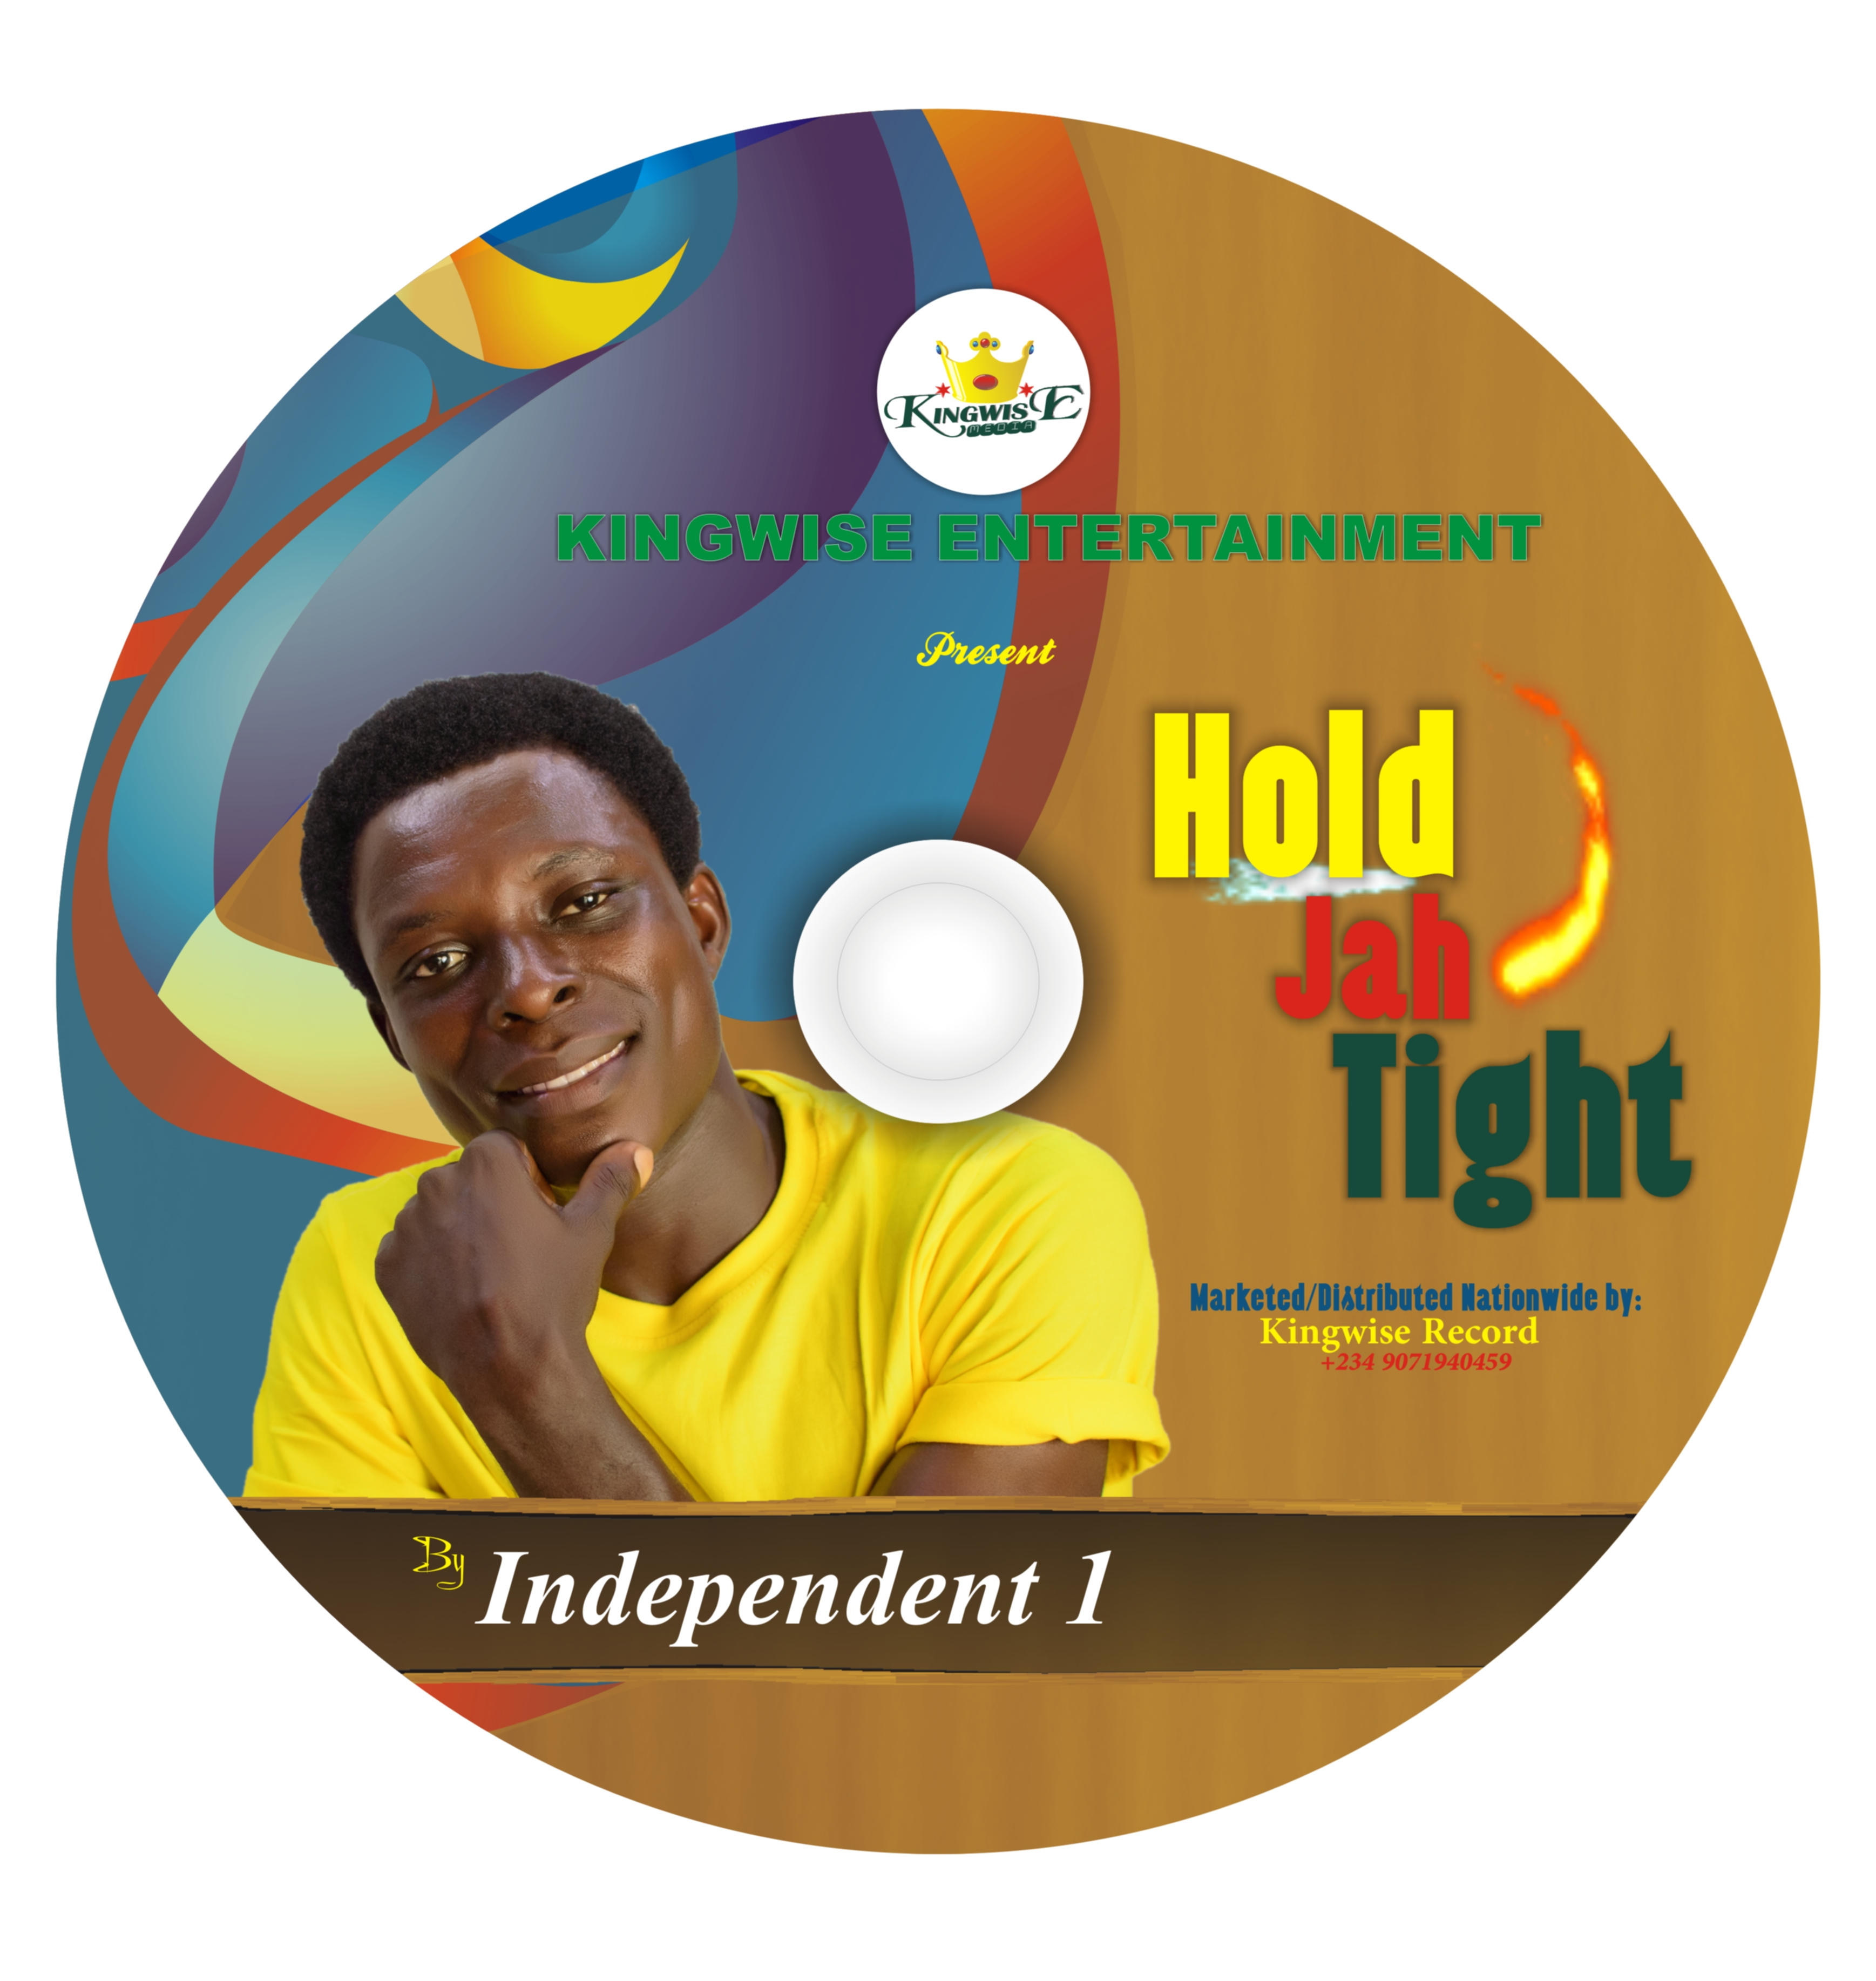 Independent 1 - Hold Jah Tight